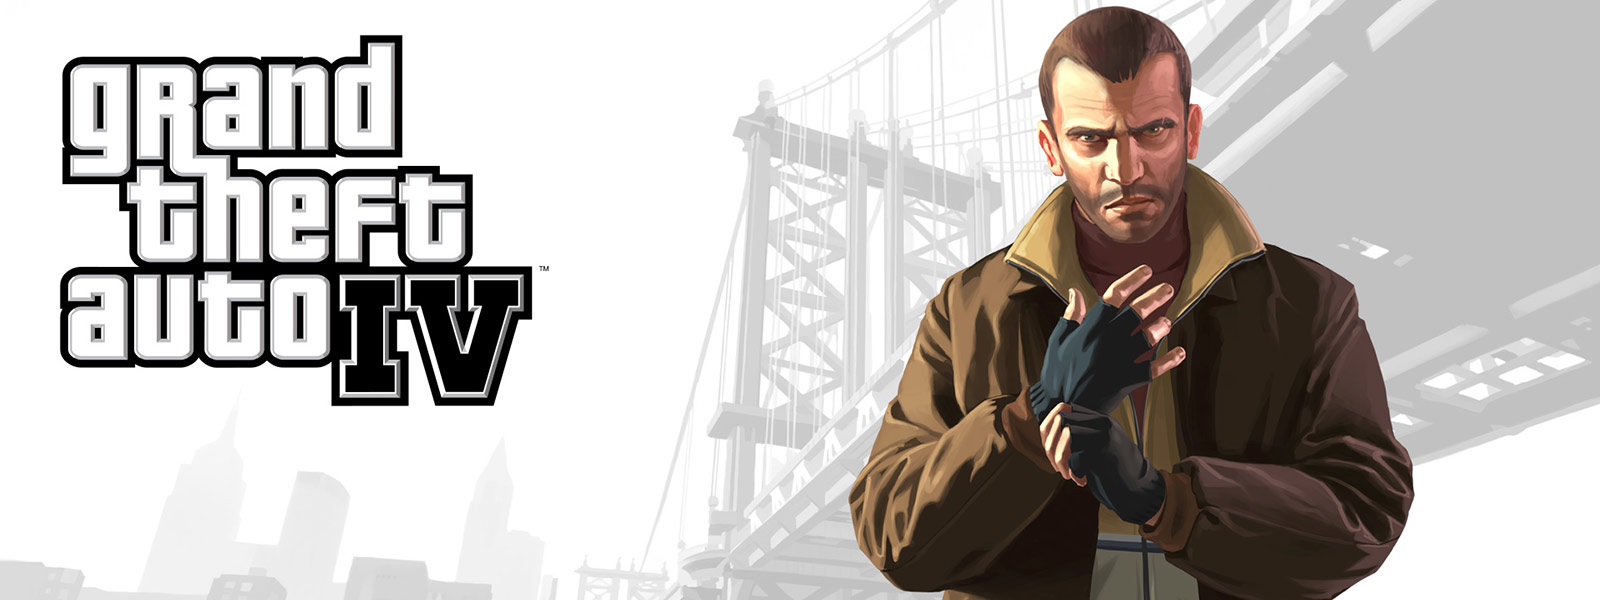 GTA IV available on backward compatability